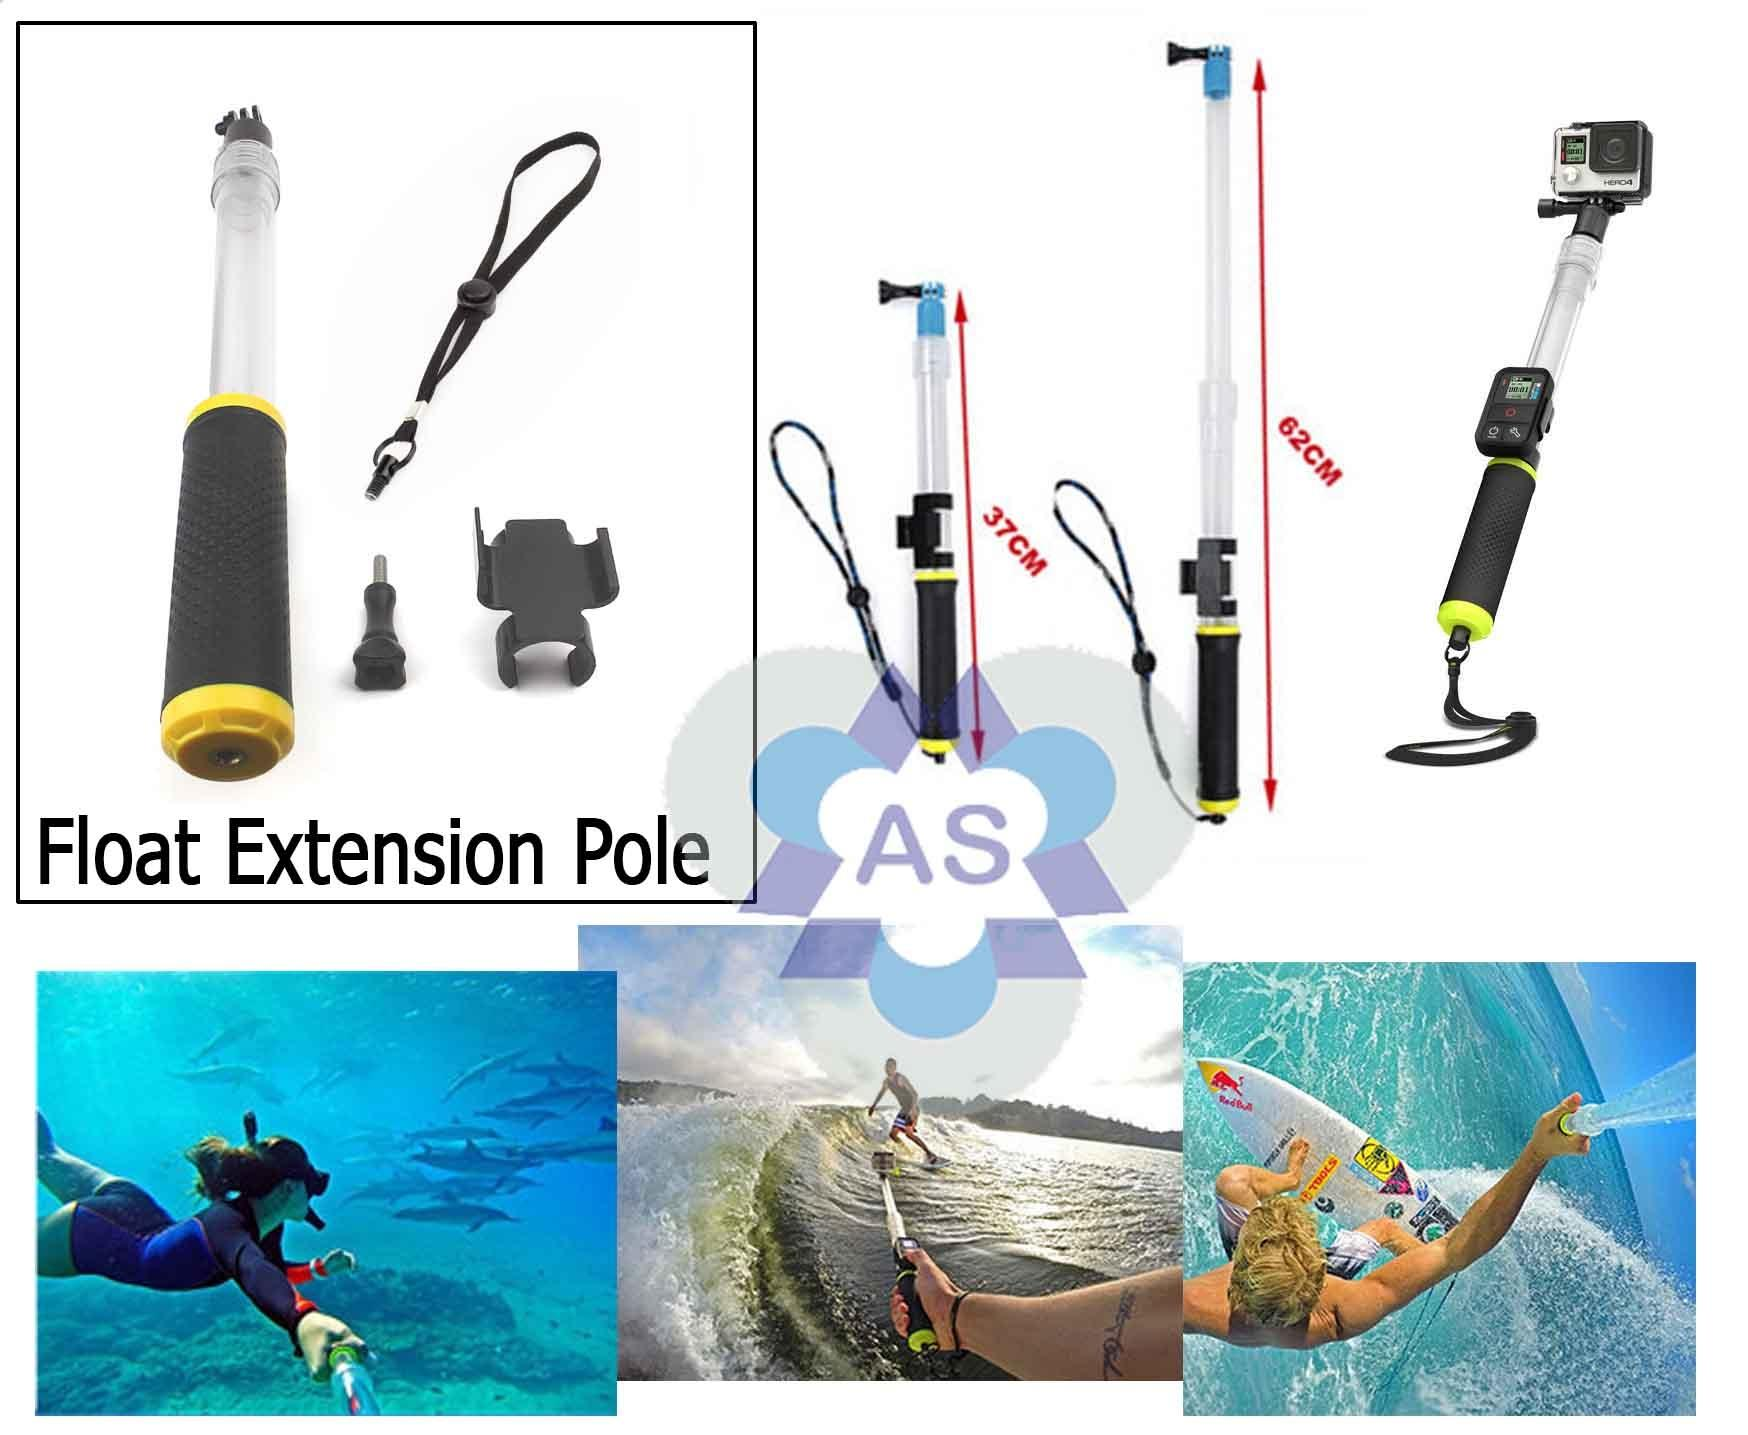 GoPro Float Extension Pole